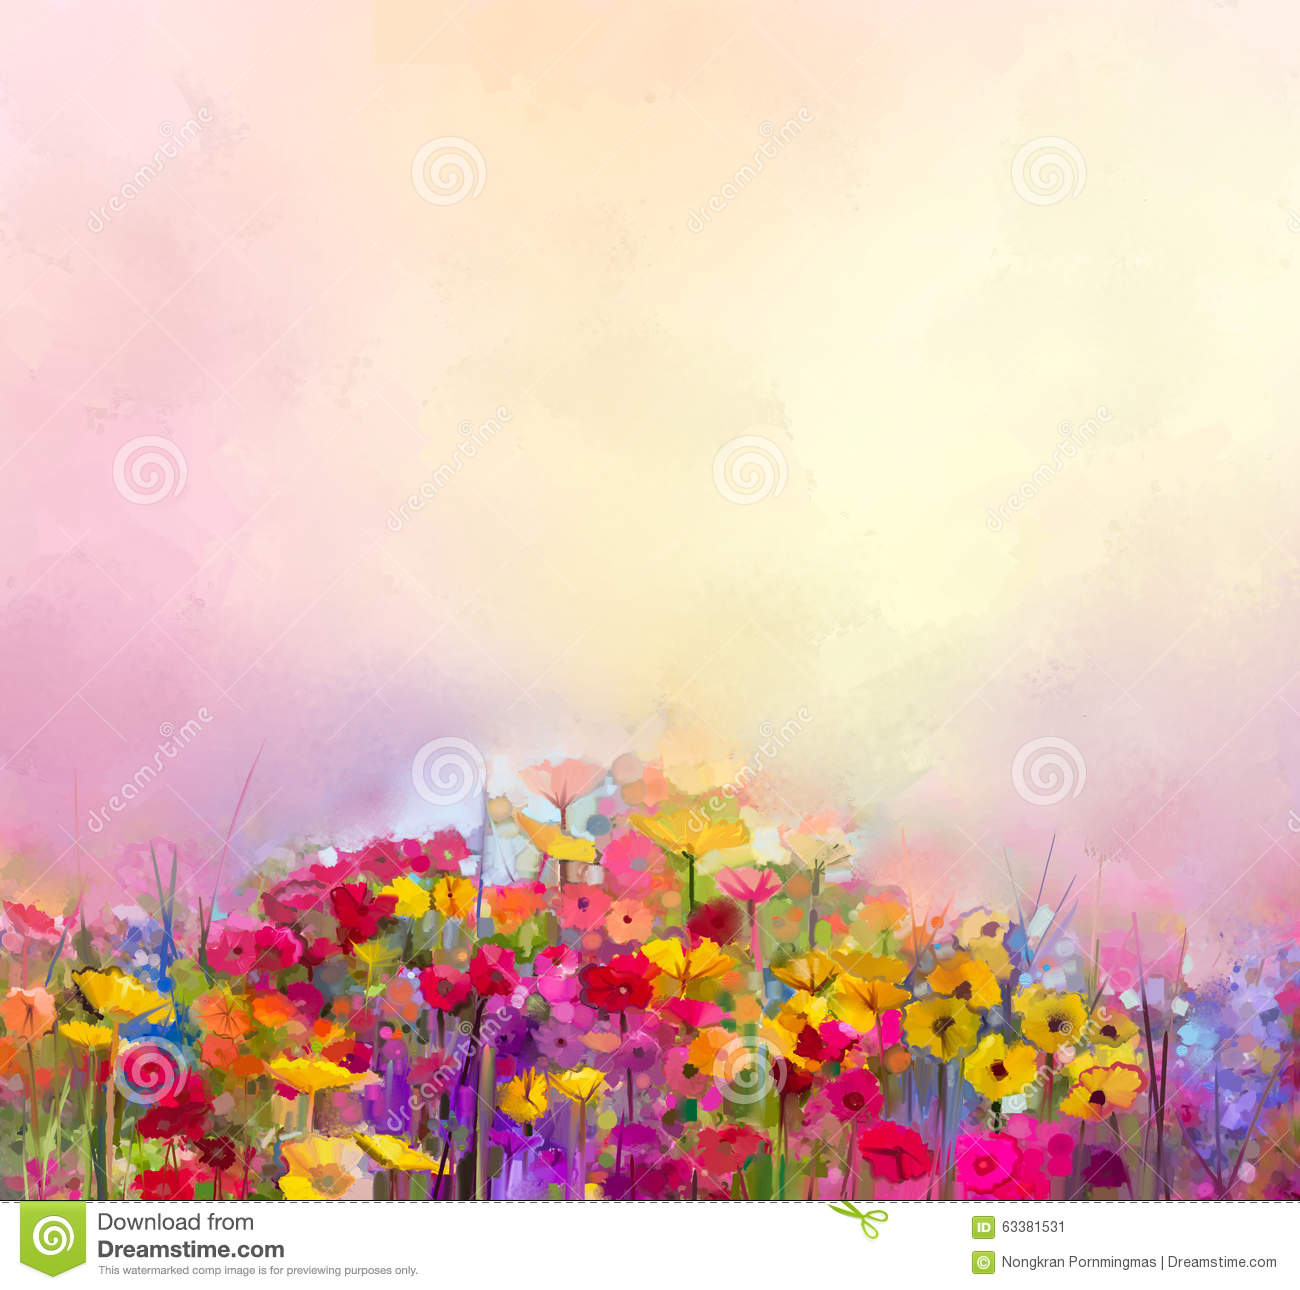 Abstract art oil painting of summer spring flower meadow landscape abstract art oil painting of summer spring flower meadow landscape with wildflower nature cloud mightylinksfo Choice Image